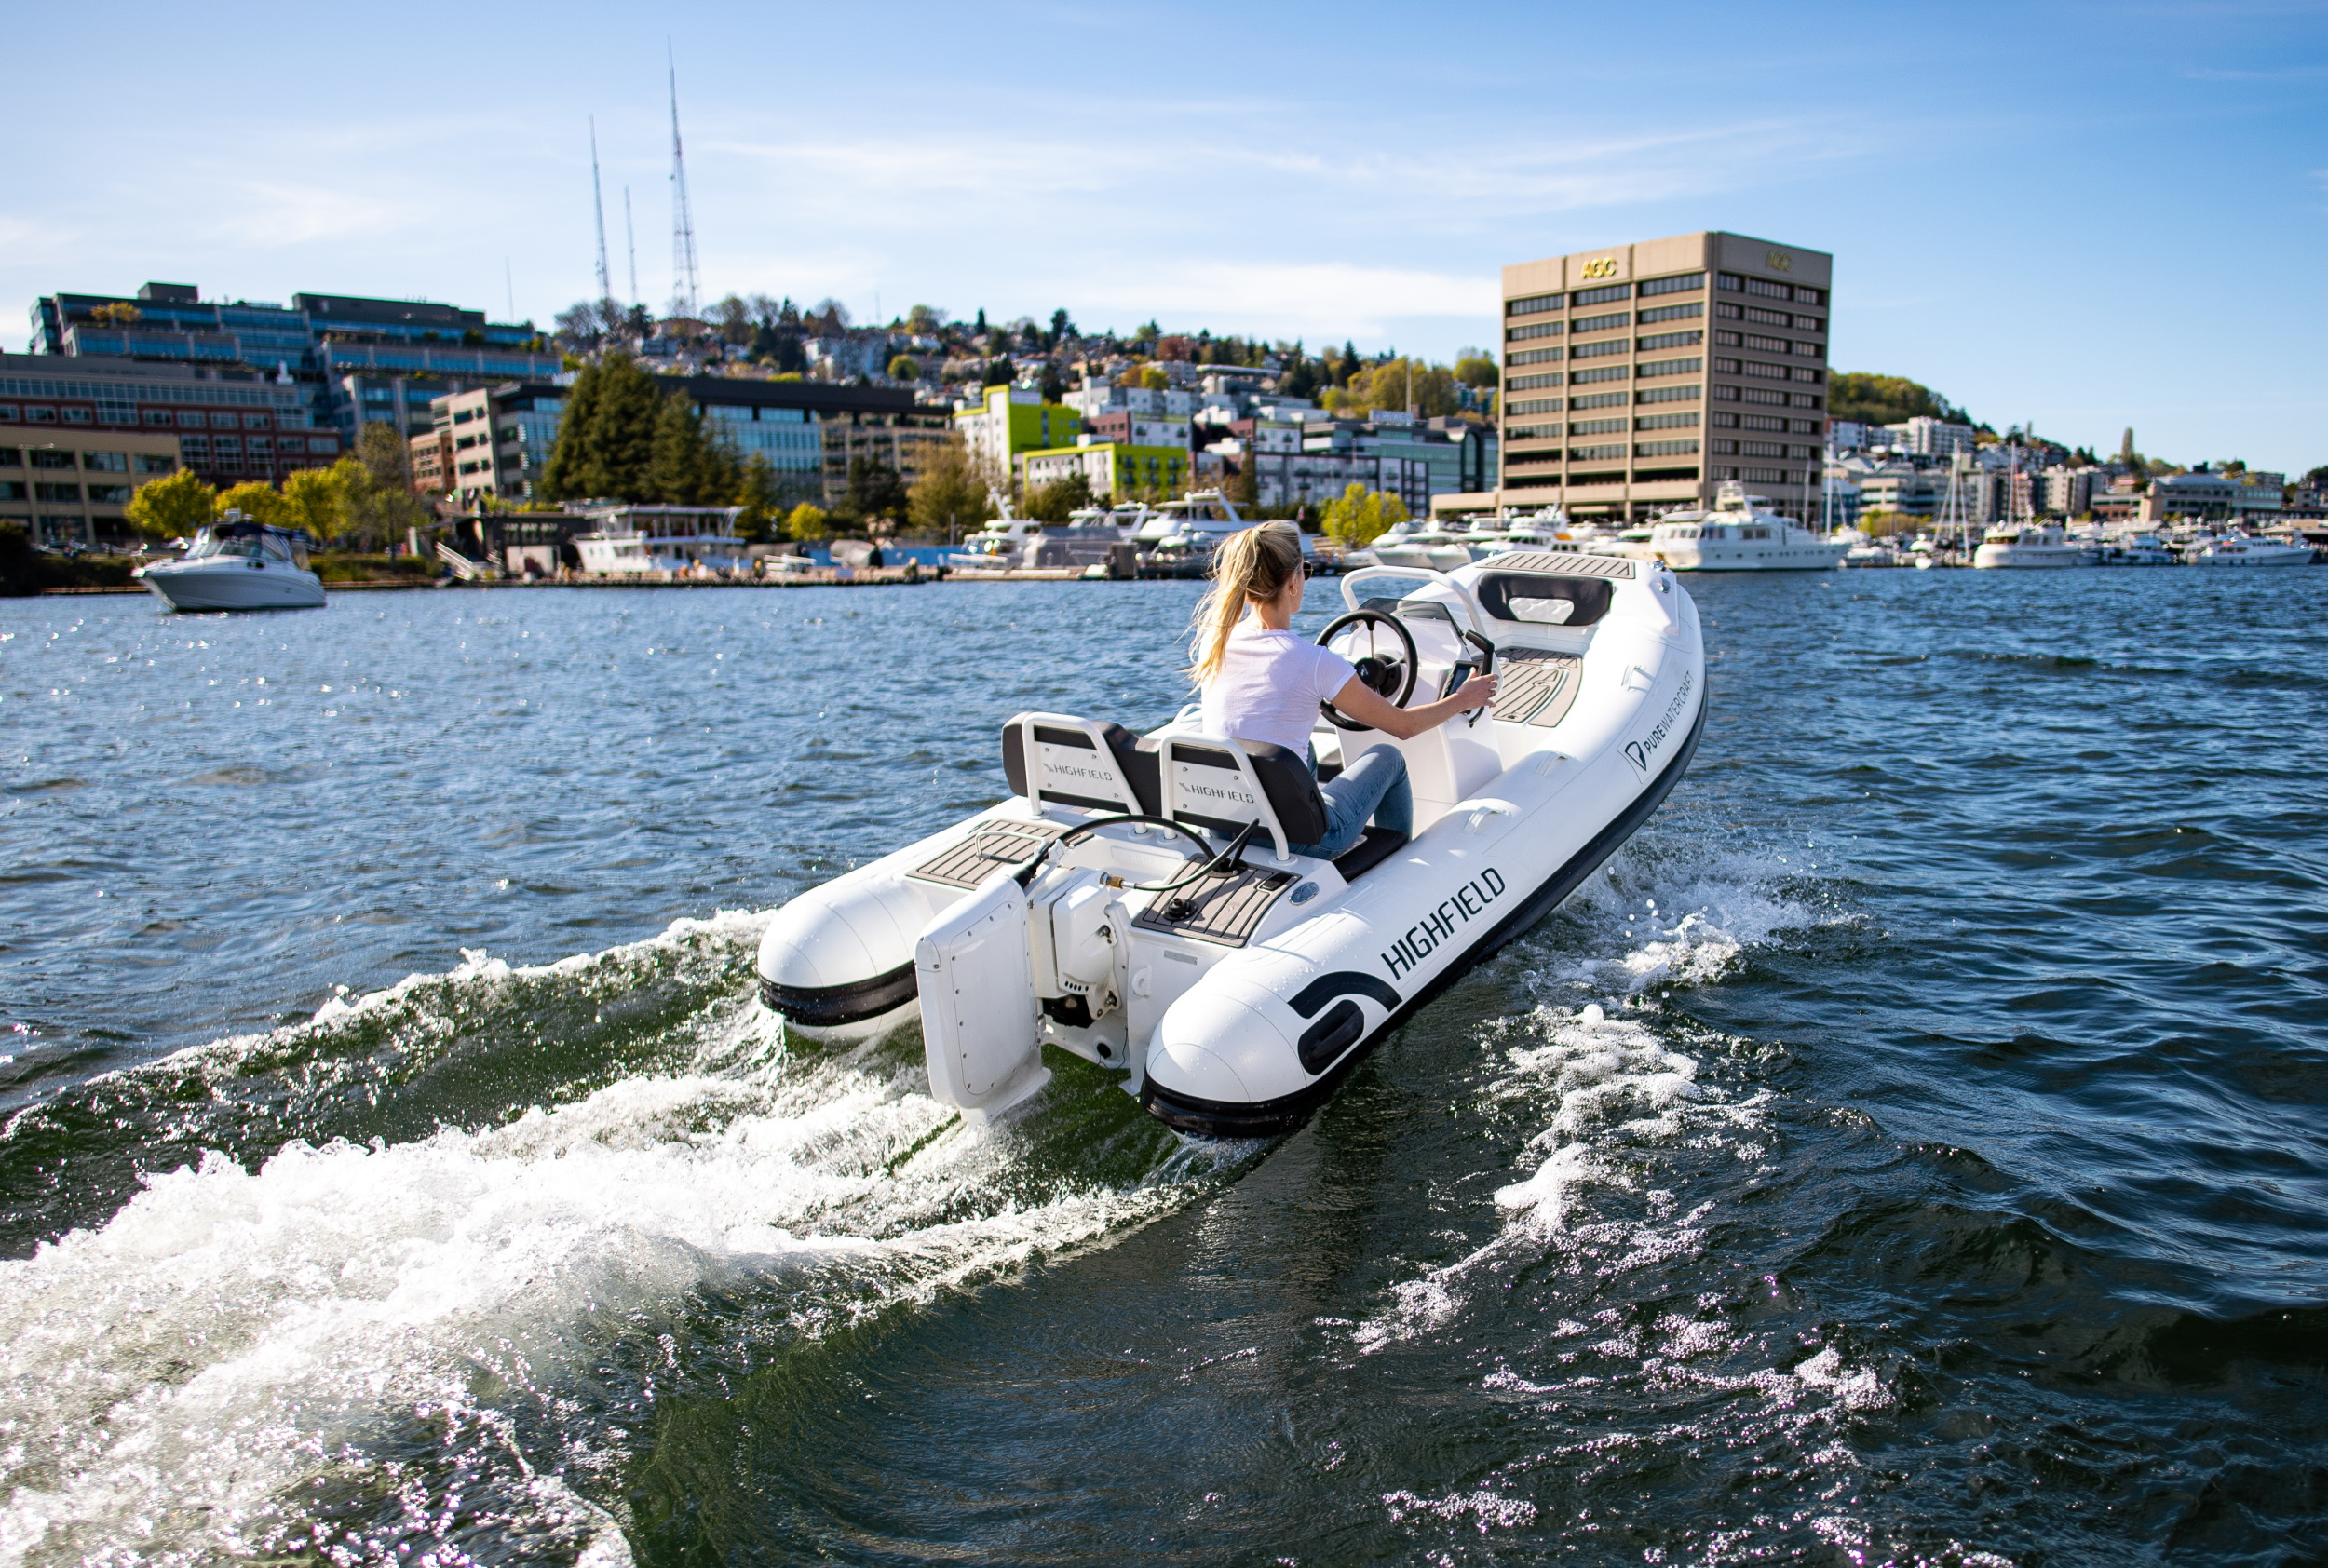 A boat with an electric outboard motor cruising on a lake.